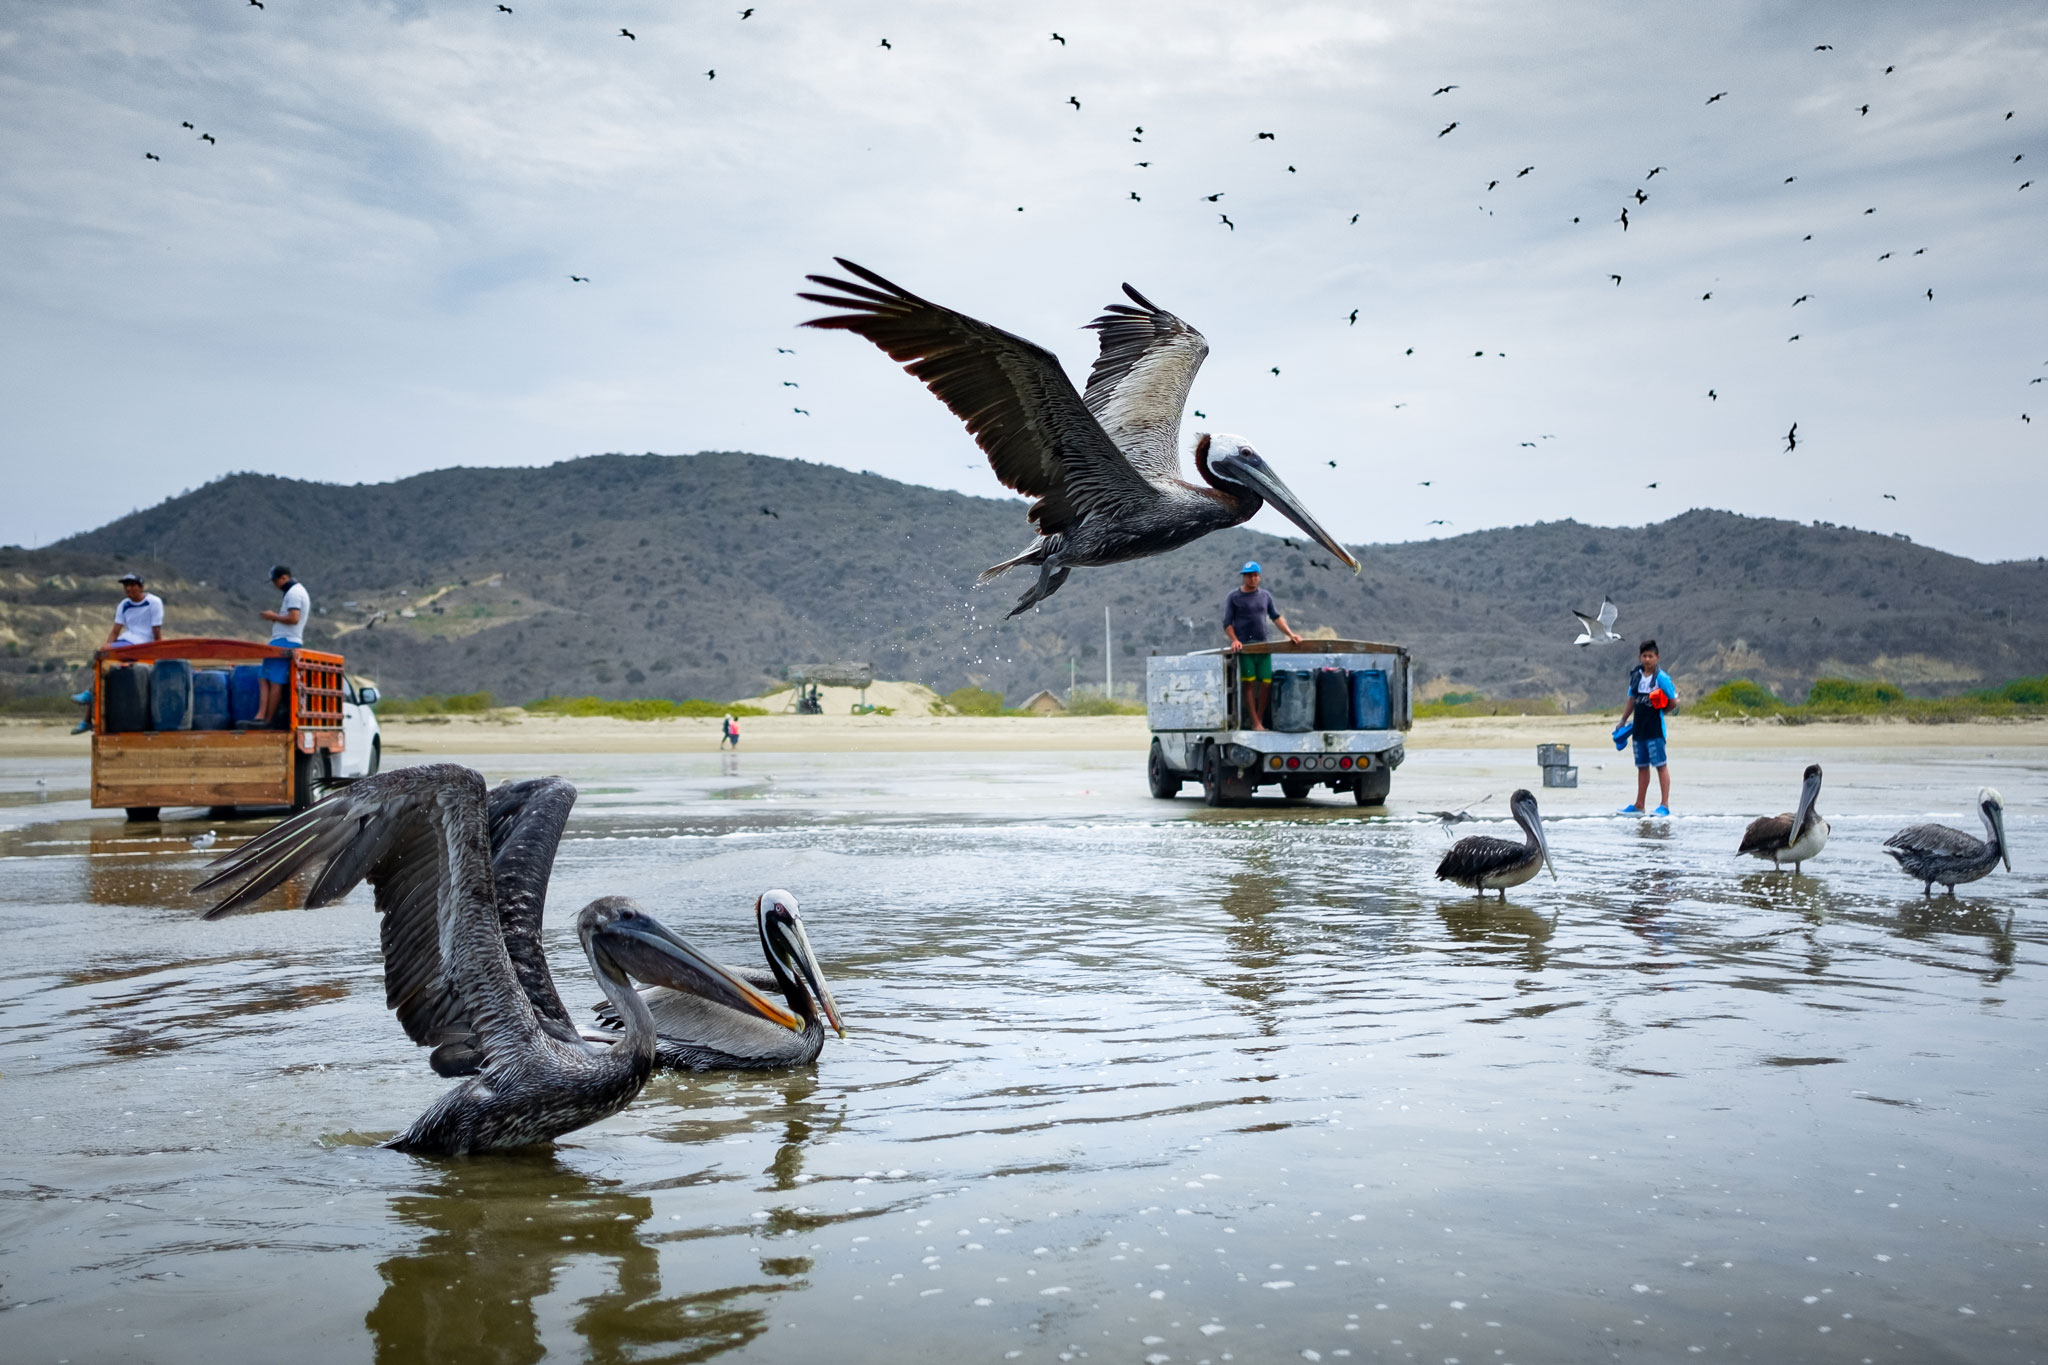 PELICANS OF THE PACIFIC ECUADORIAN COAST